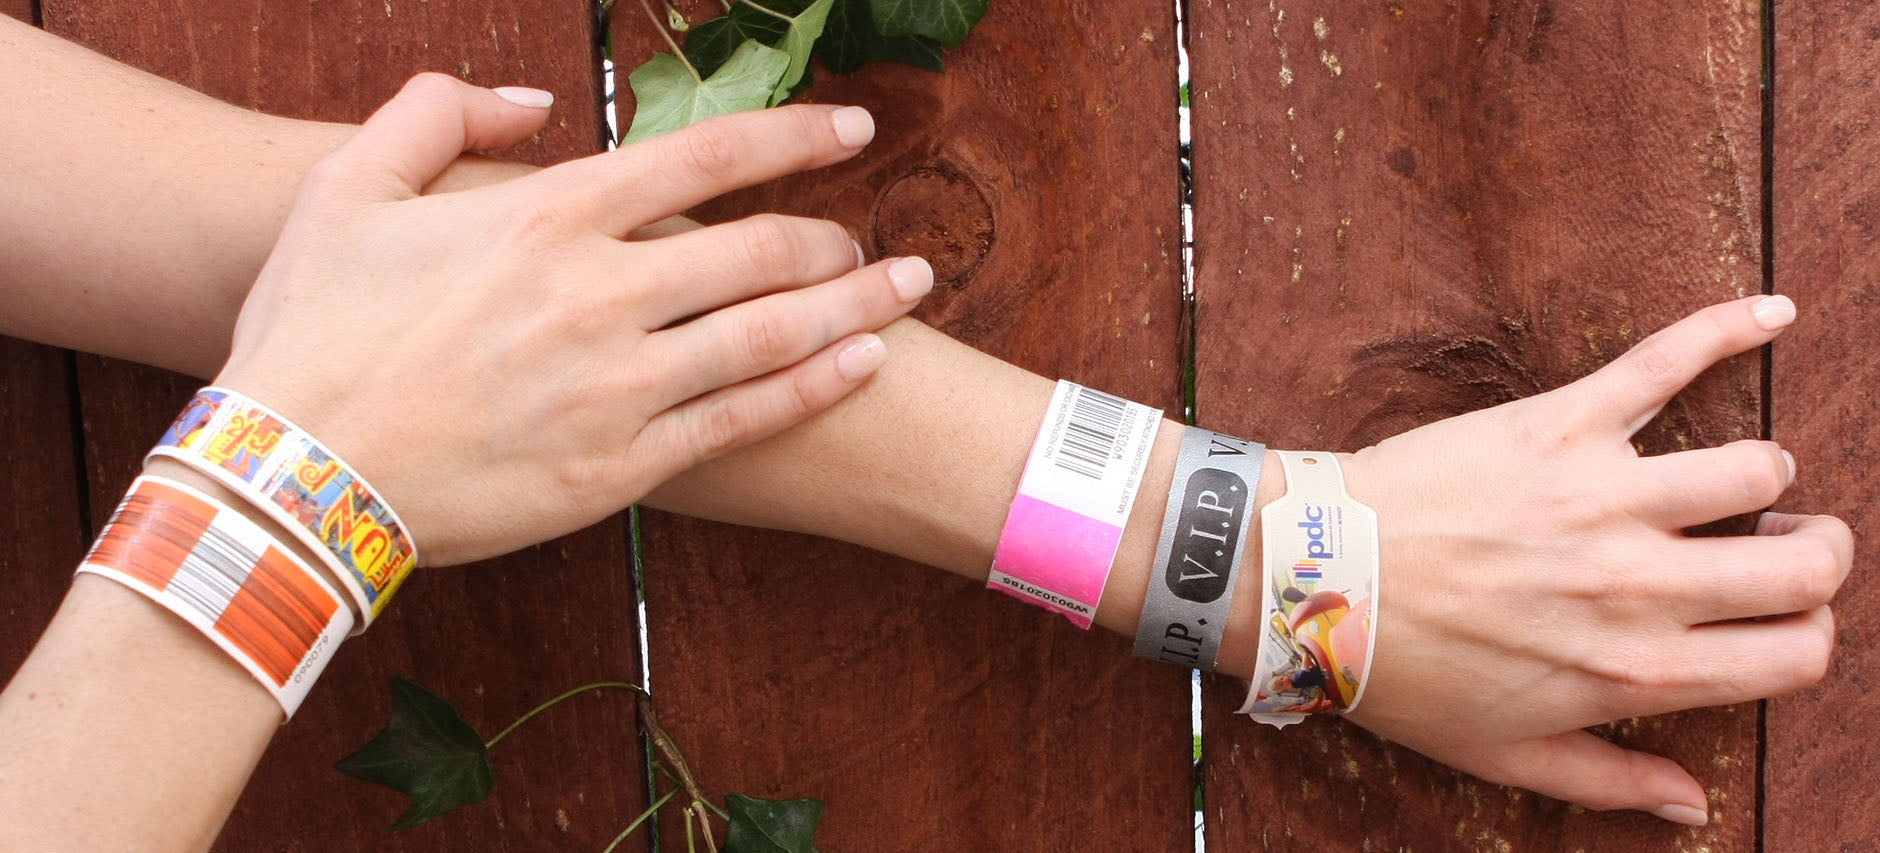 How to Get the Most Advertising from Your Wristbands